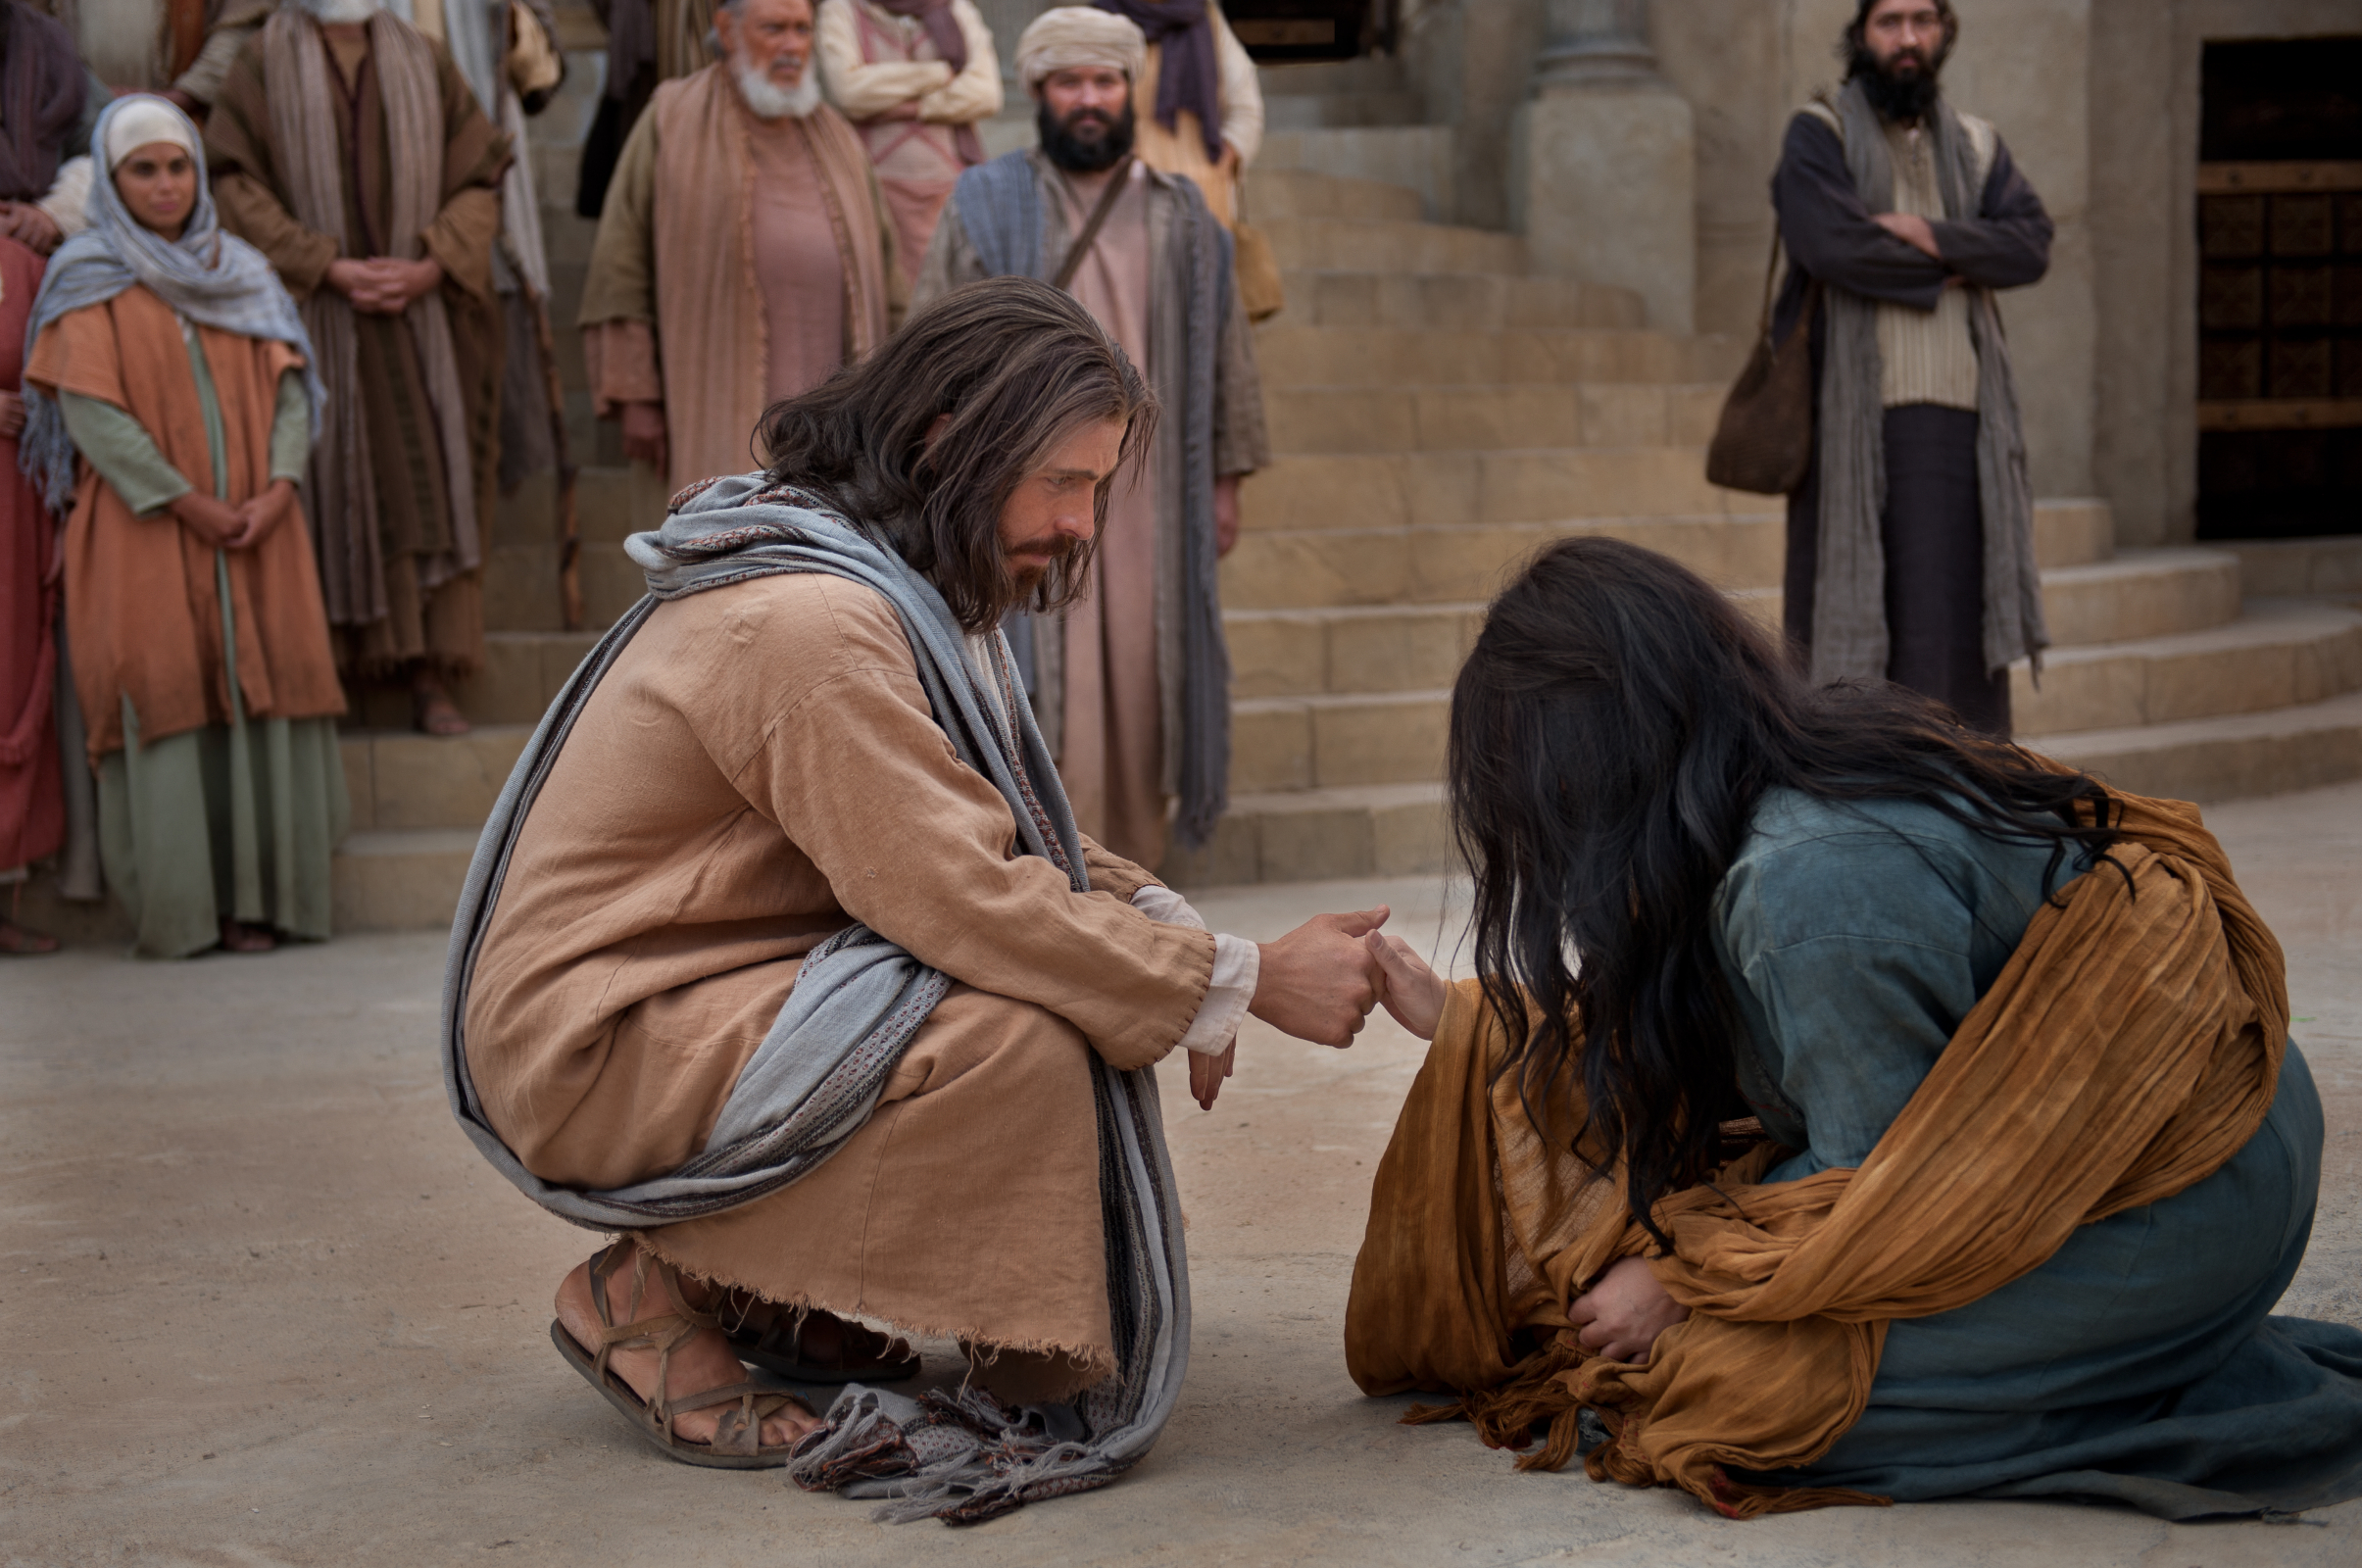 """Read how Jesus forgives and loves even the seemingly """"unforgivable"""" with a Christmas story about an orphan girl."""